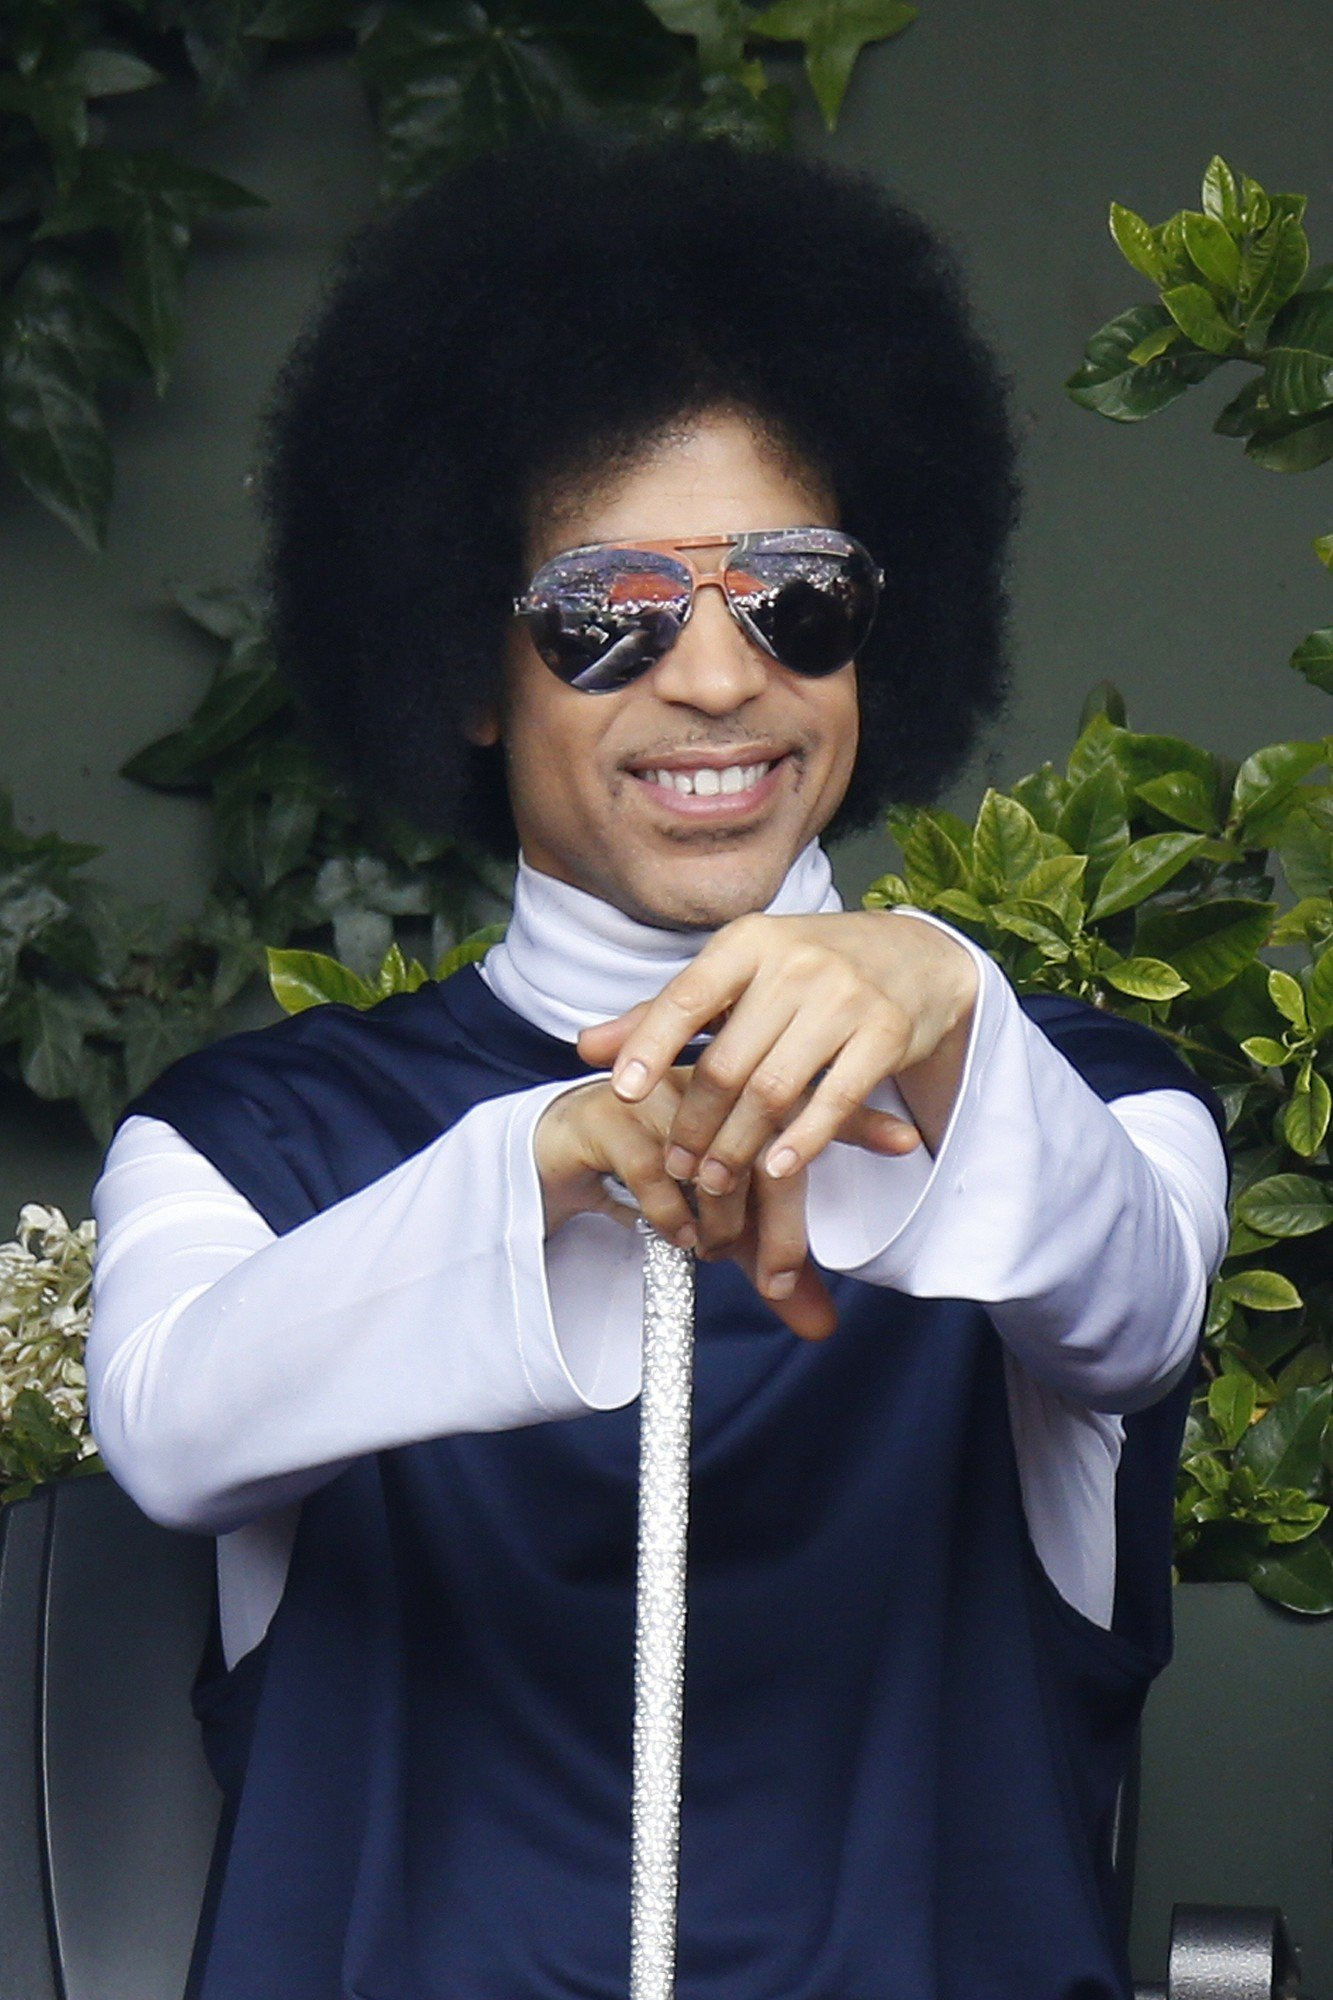 US singer Prince attends the French tennis Open round of sixteen match between Spain's Rafael Nadal and Serbia's Dusan Lajovic at the Roland Garros stadium in Paris on June 2, 2014. AFP PHOTO / KENZO TRIBOUILLARD (Photo credit should read KENZO TRIBOUILLARD/AFP/Getty Images)